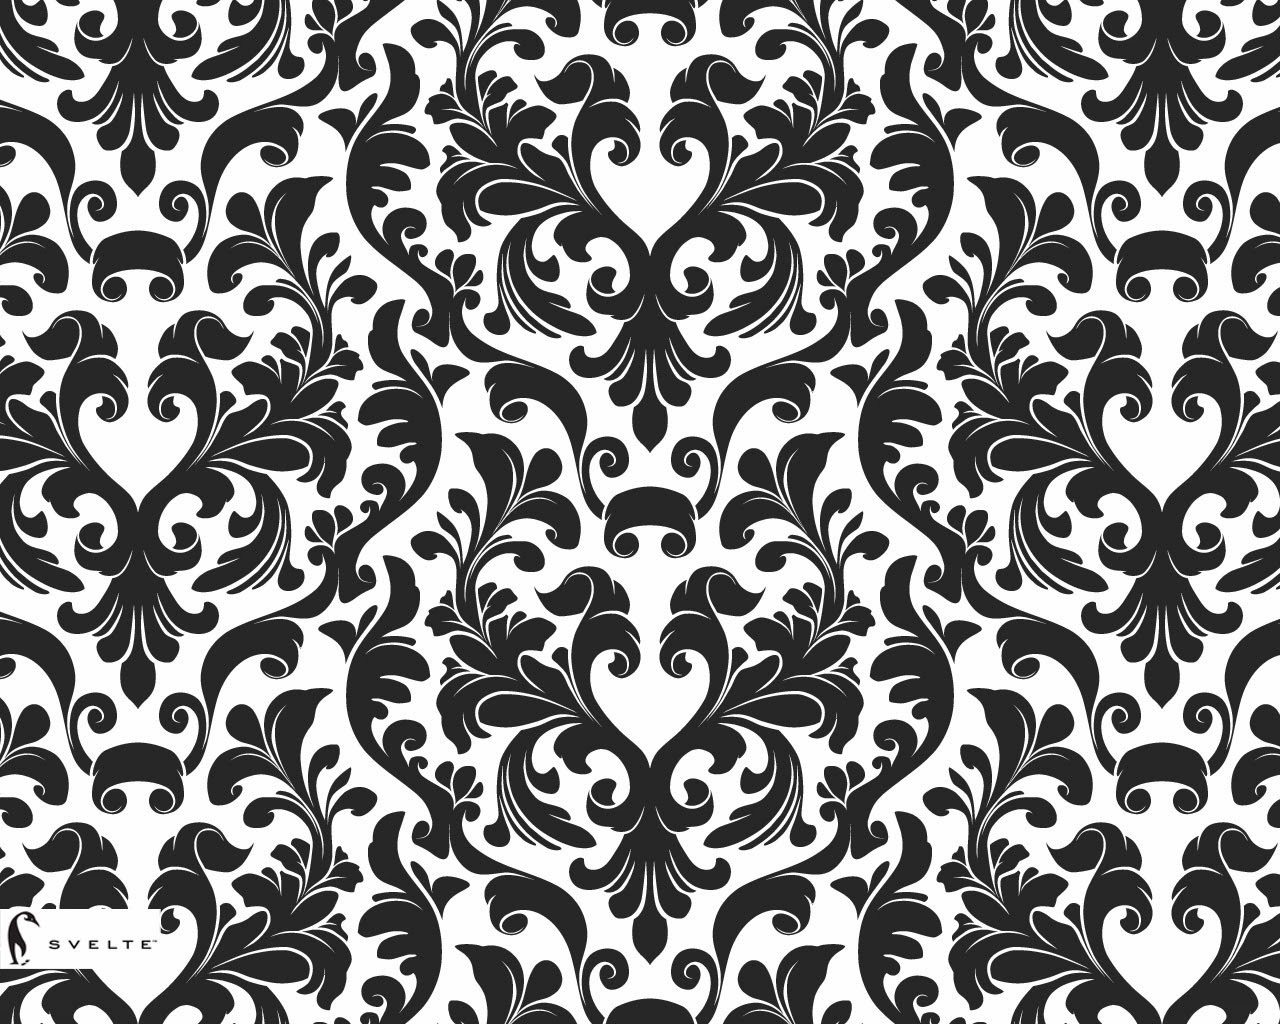 Black and White Texture Backgrounds